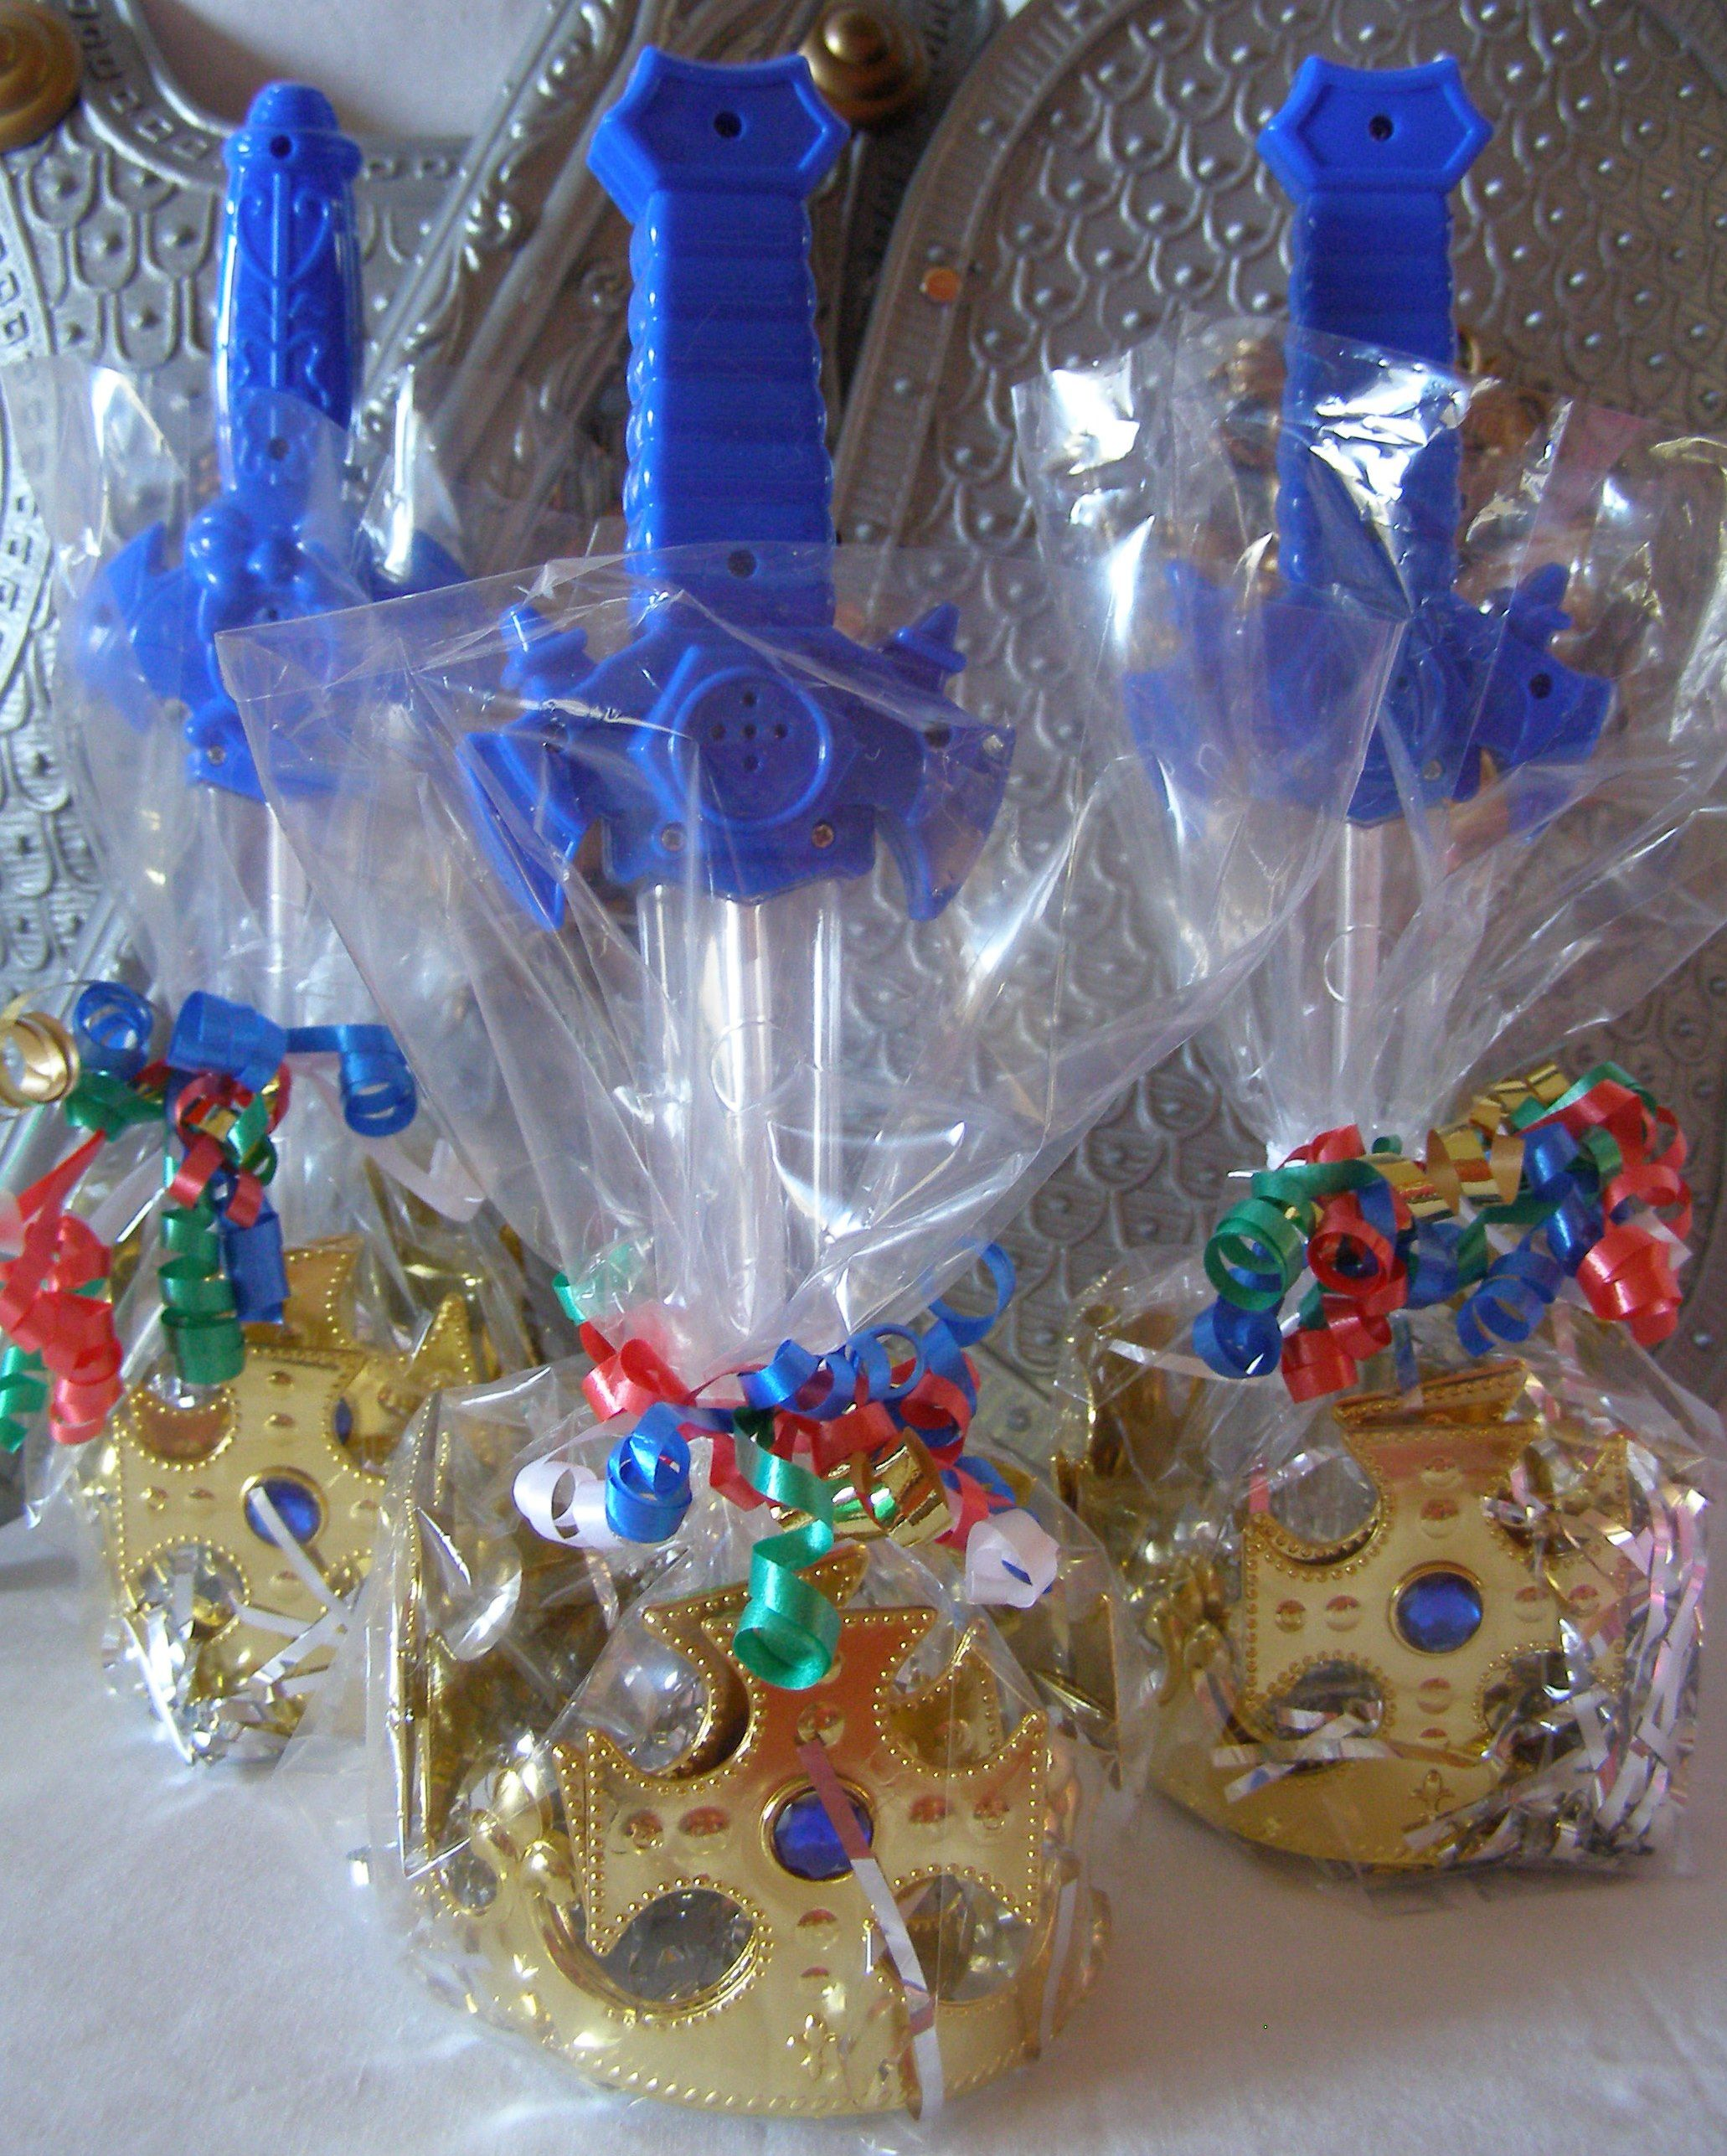 Boys Favors at a Princess Party. Crown and Light up Sword from My Princess Party to Go. http://www.myprincesspartytogo.com/Boysdressup.html #boyspartyfavors #knightparty